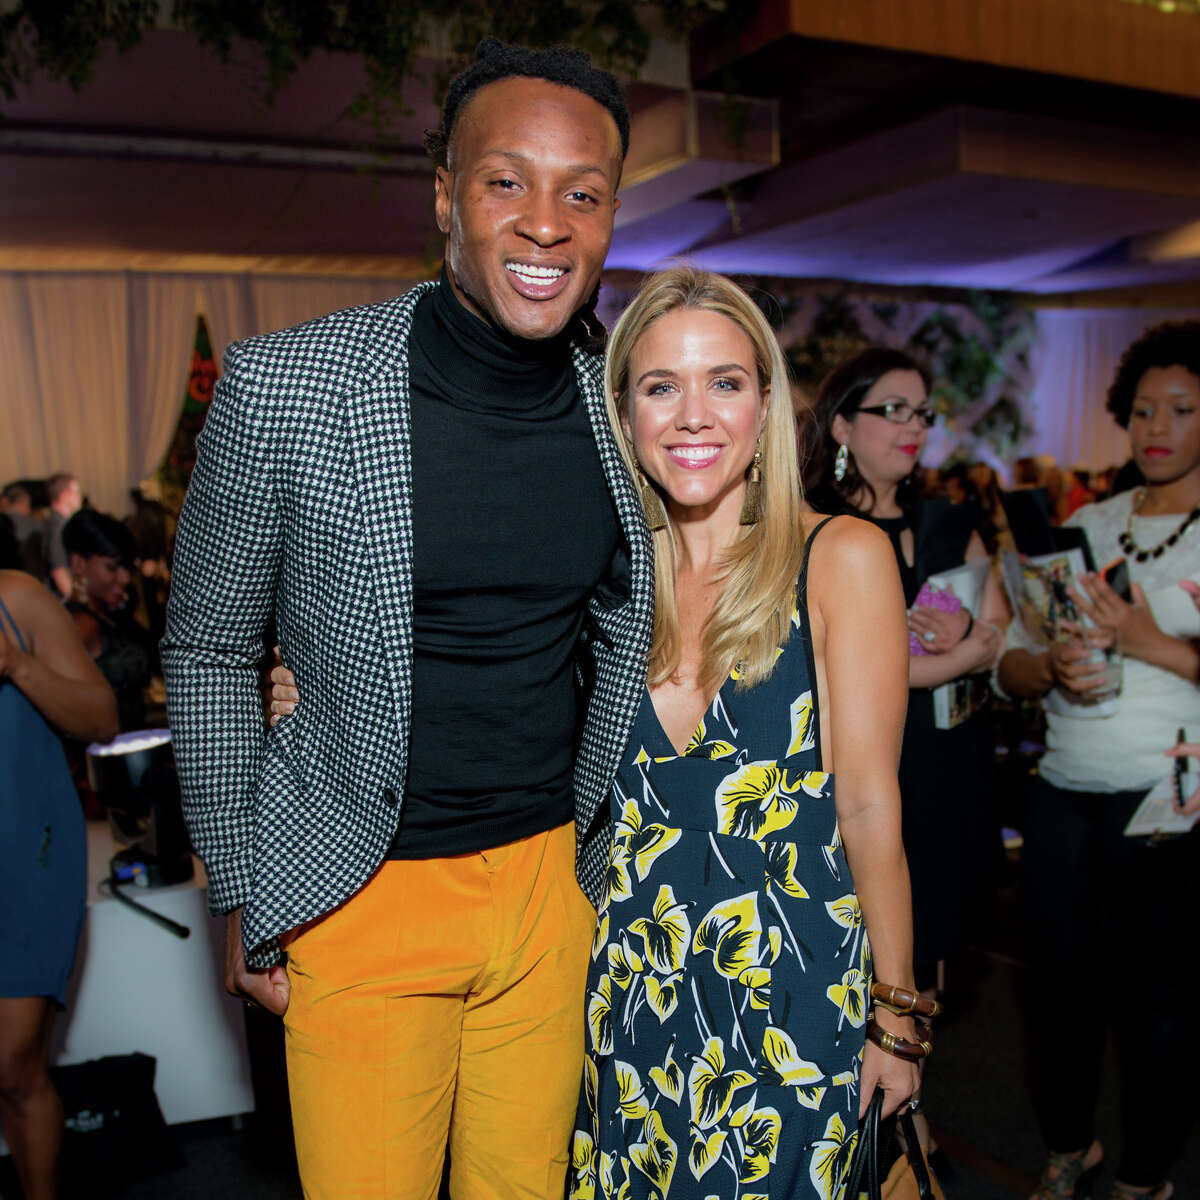 DeAndre Hopkins, wide receiver for the Houston Texans and Vogue market stylist Cara Crowley